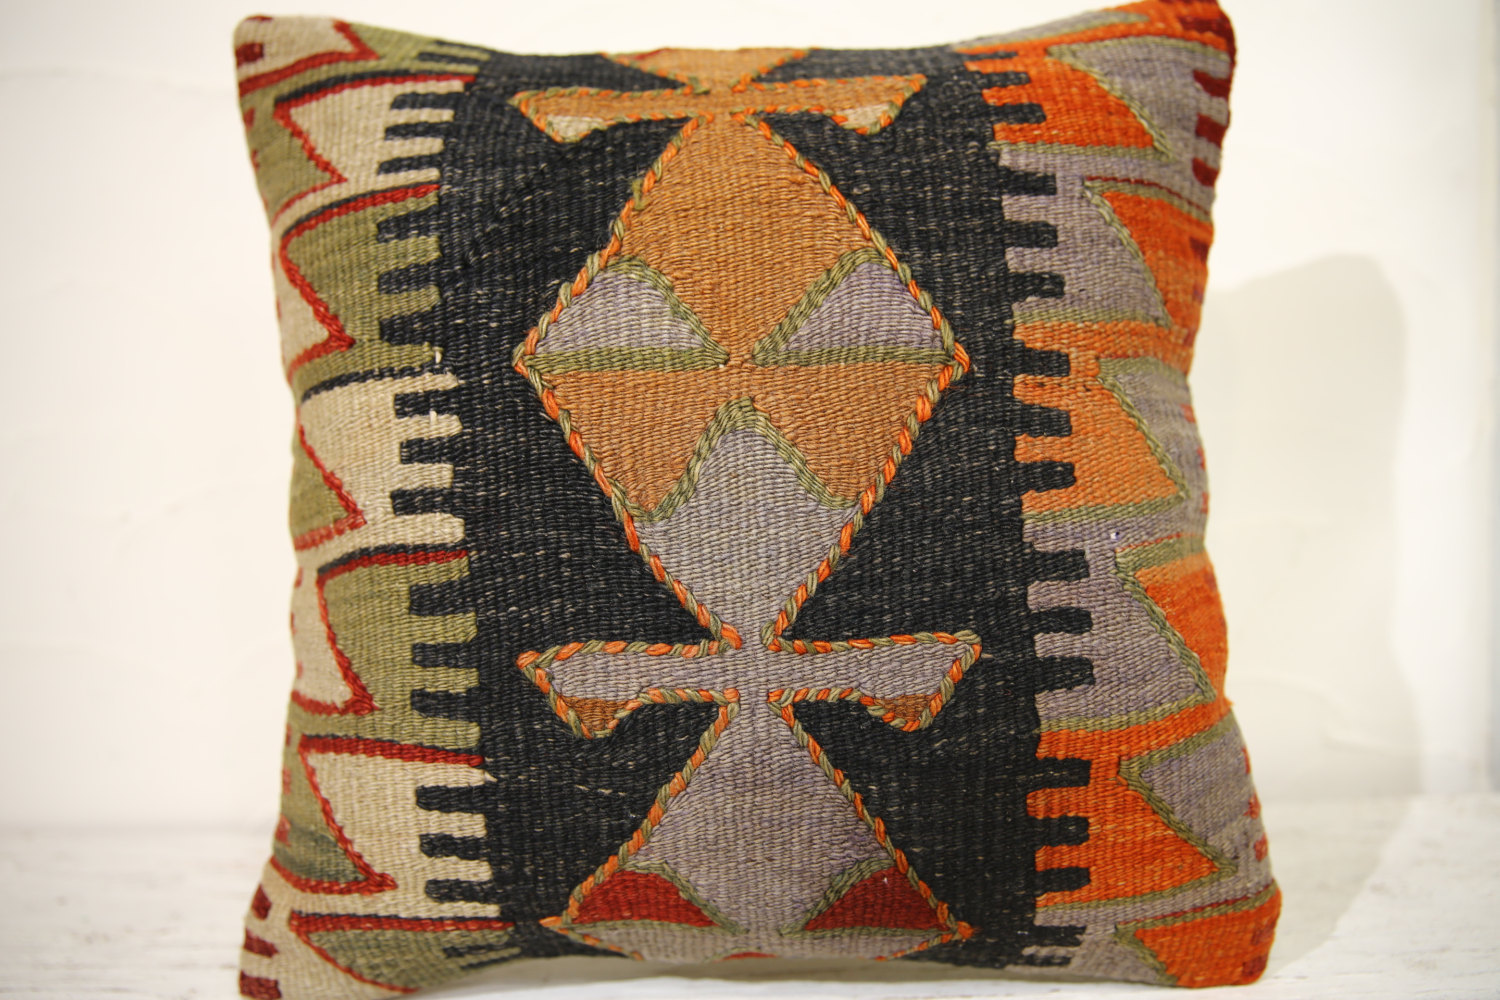 Kilim Pillows | 16x16 | Decorative Pillows | 885 | Accent Pillows , turkish pill